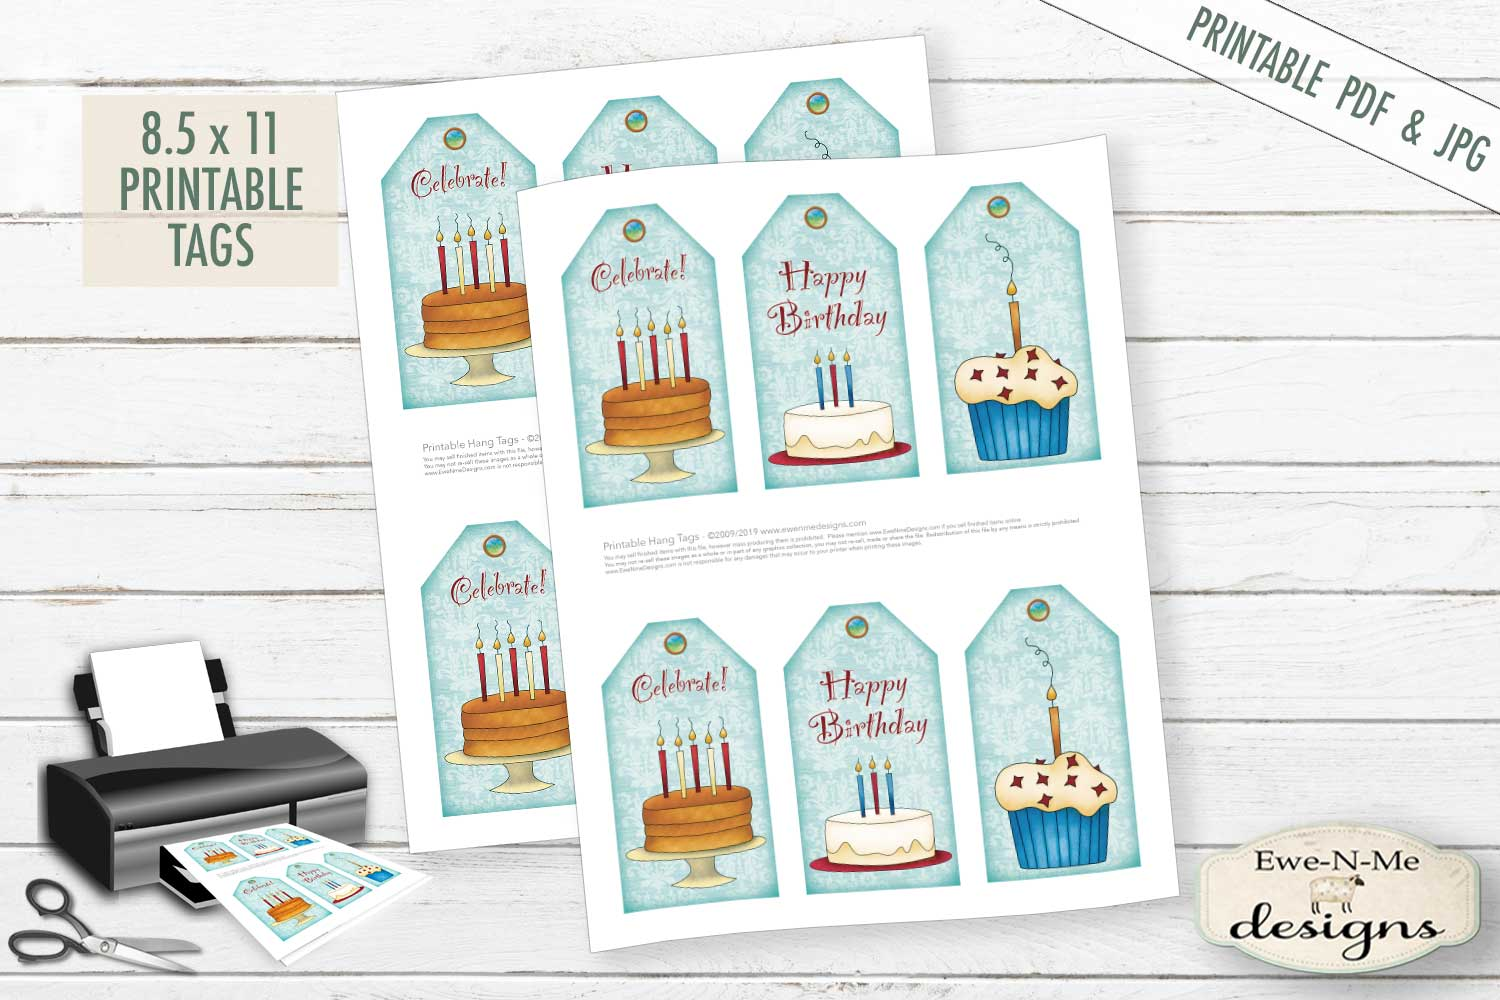 Printable Birthday Tags - Cake Cupcakes - PDF & JPG example image 2